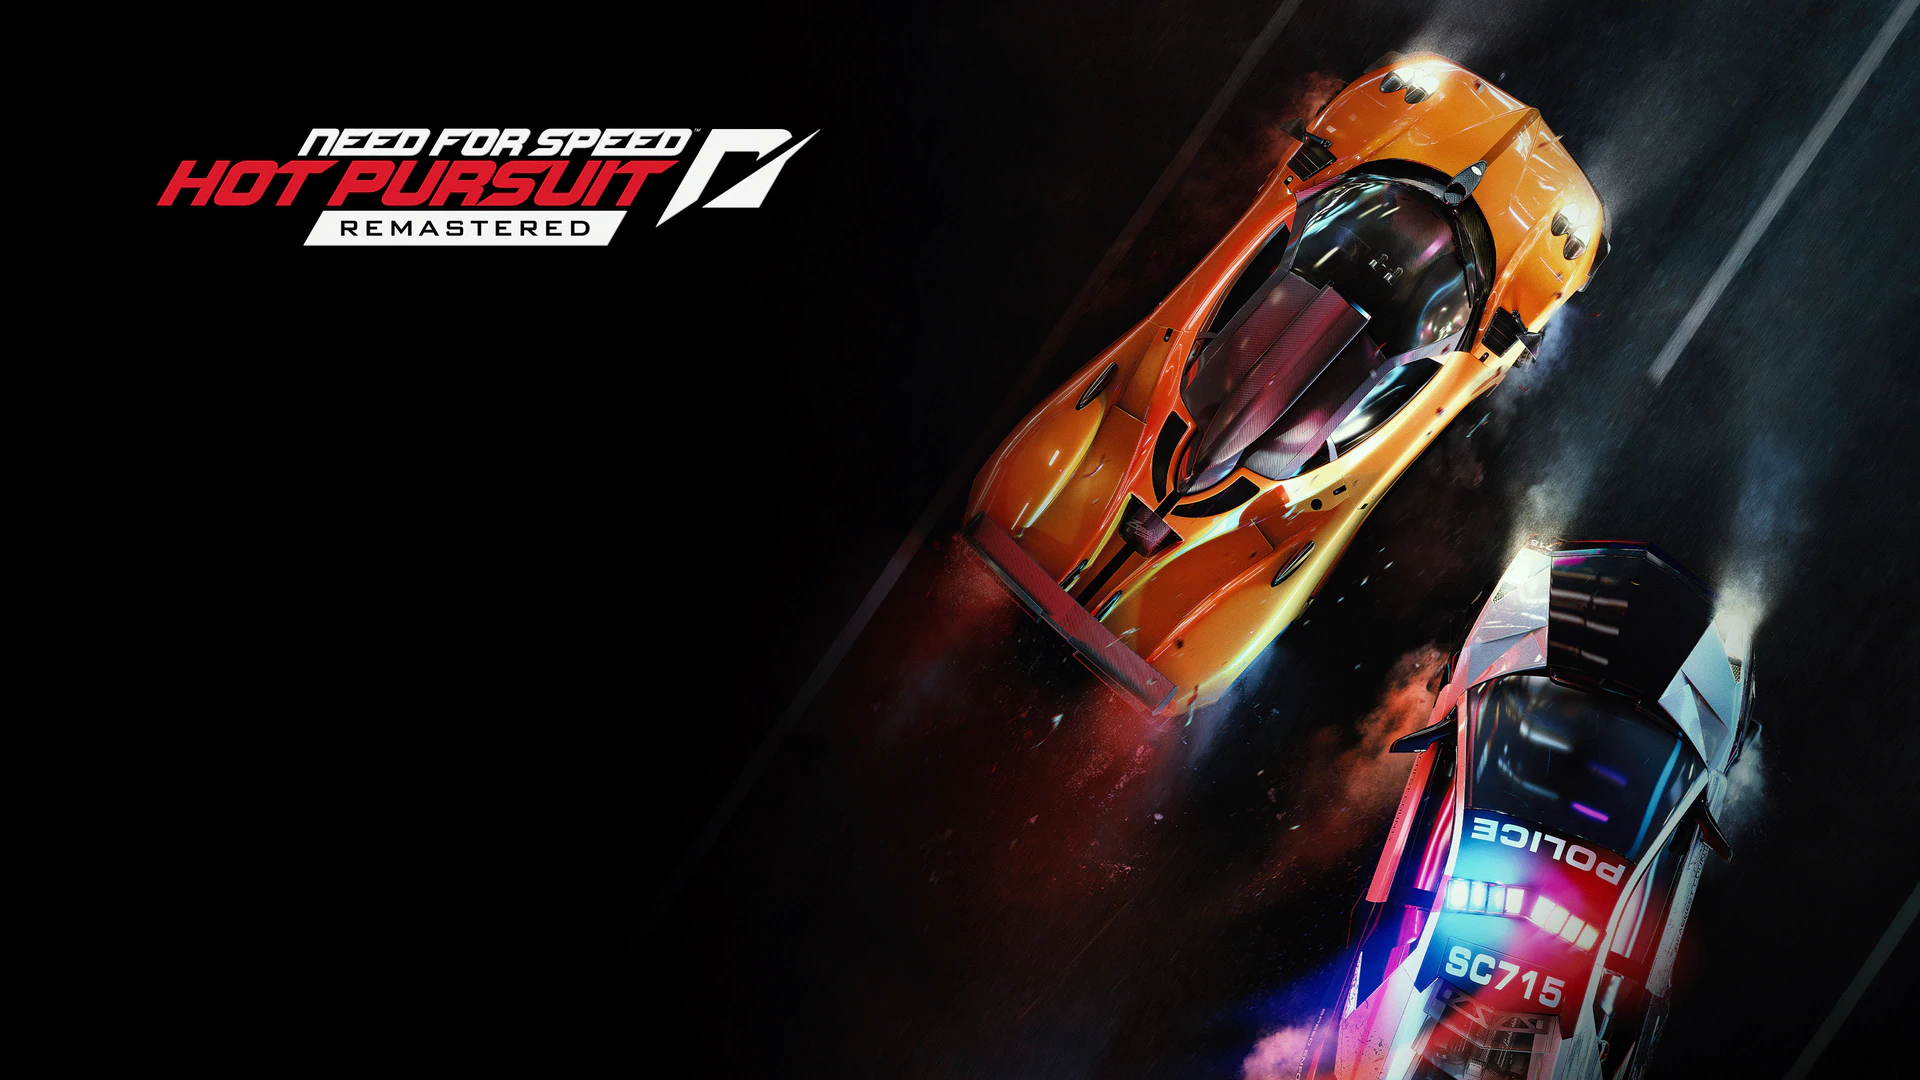 Need For Speed Hot Pursuit Remastered on Nintendo Switch at -38%